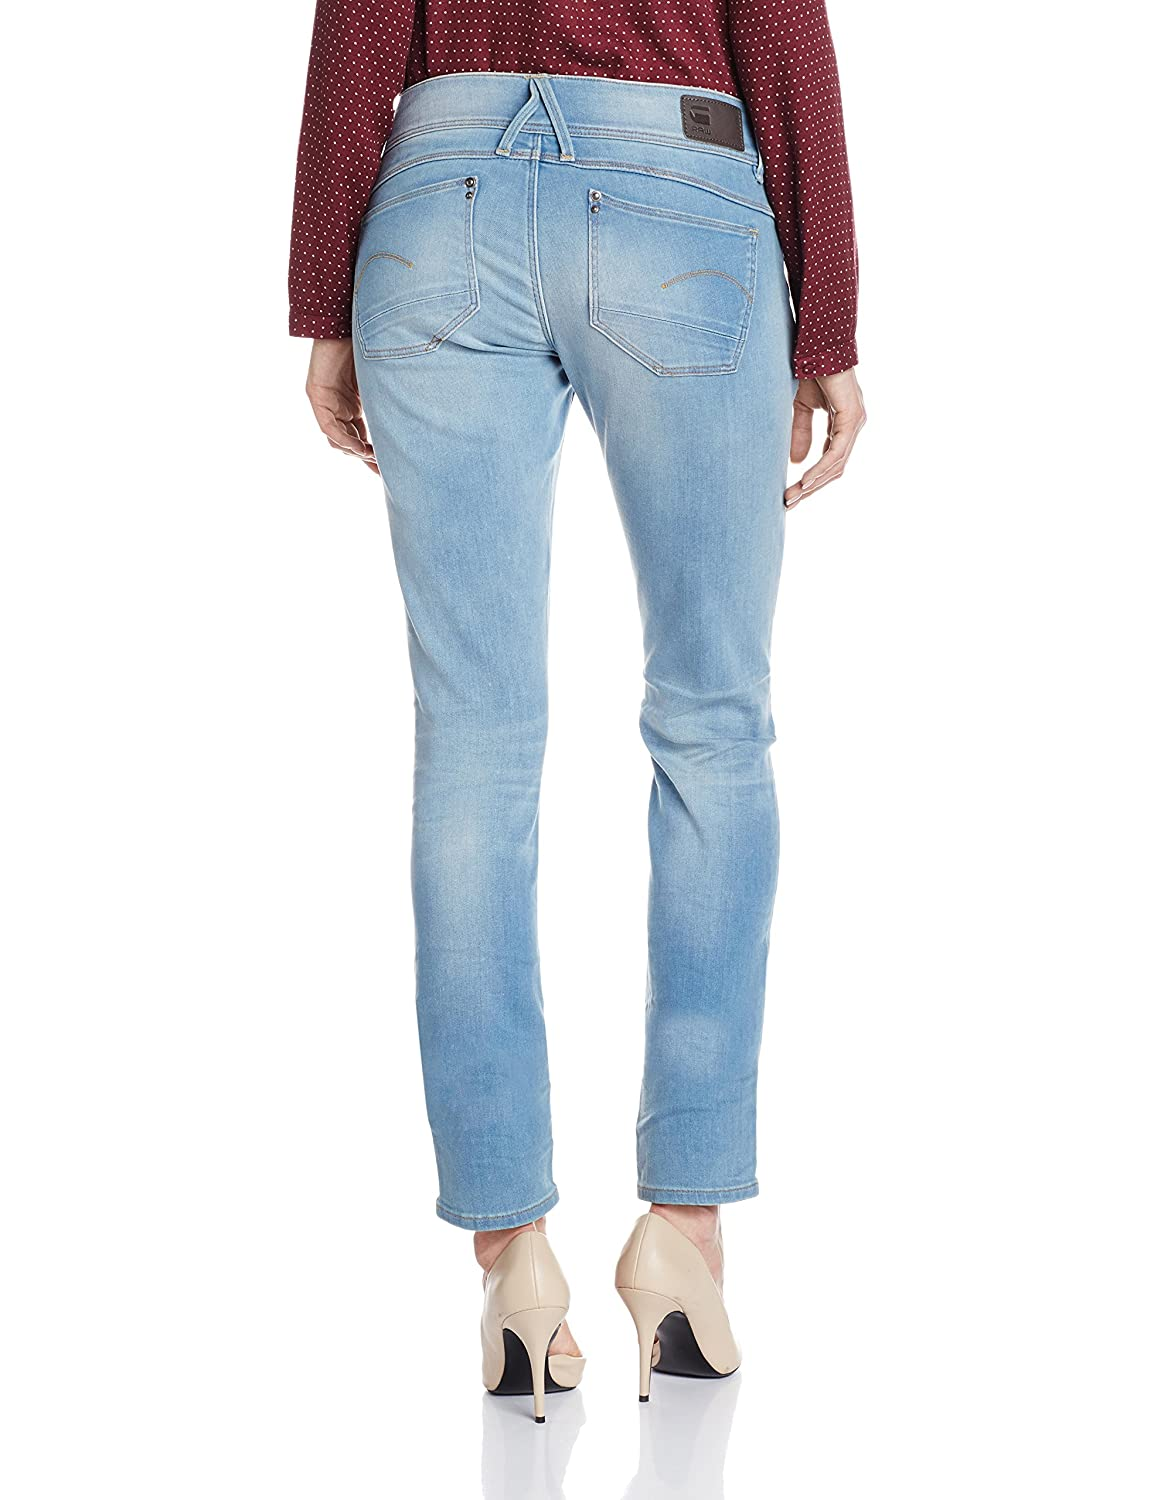 Amazon.com: G-Star Raw Women's Lynn Midrise Skinny Mauro Stretch Denim  Light Aged Jean: Clothing